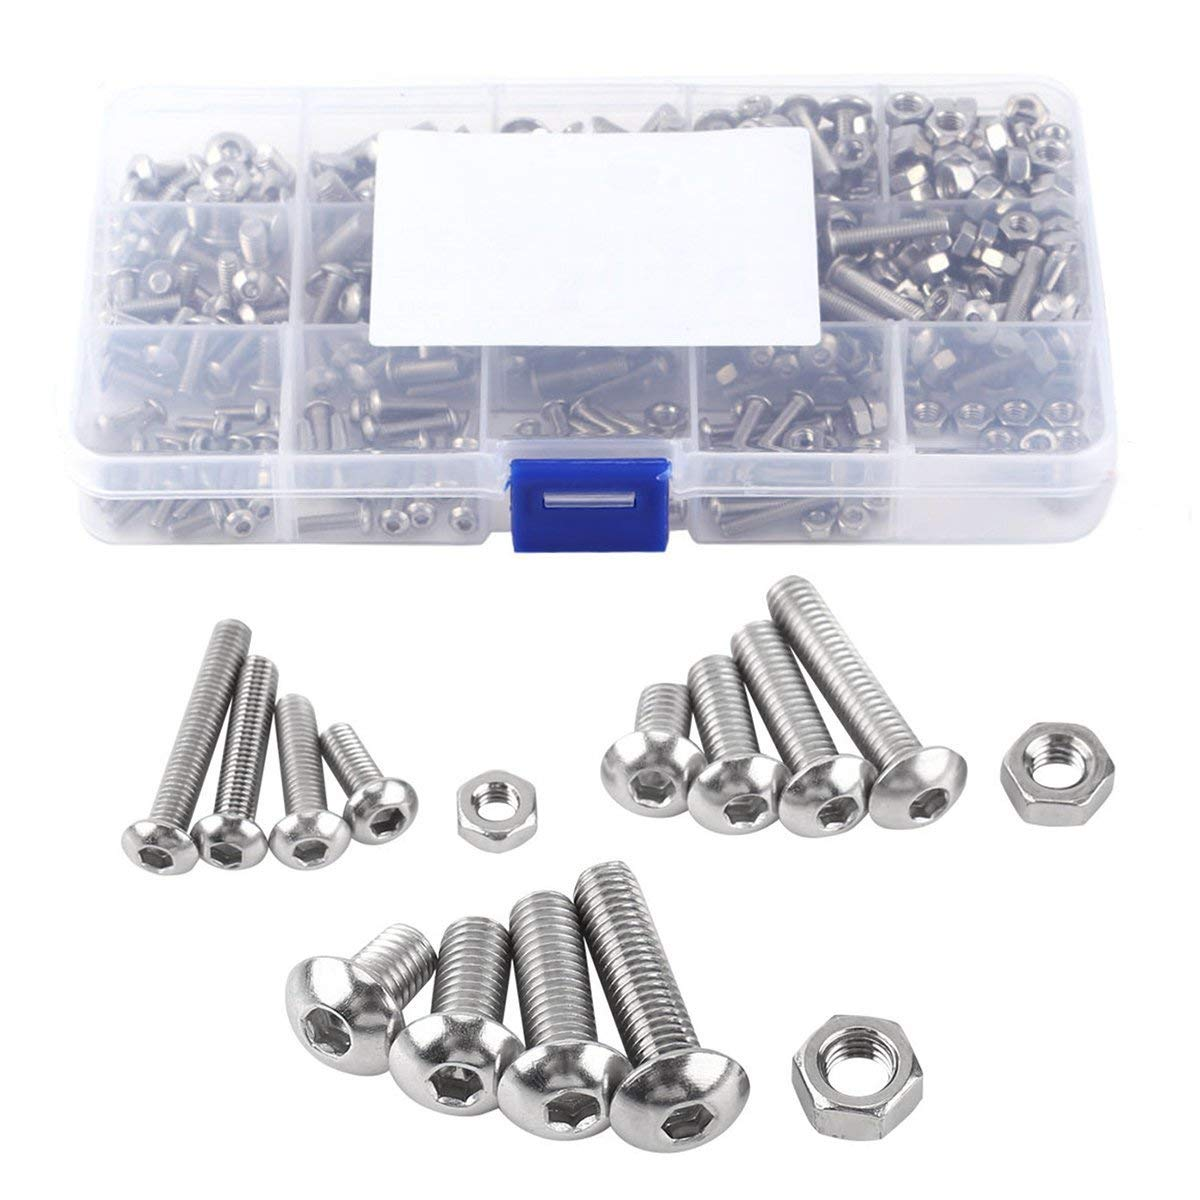 Screw and Nut Kit, COOLOGIN 500Pcs M3 M4 M5 Stainless Steel Button Head Hex Socket Head Cap Bolts Screws with Nuts Assortment Kit